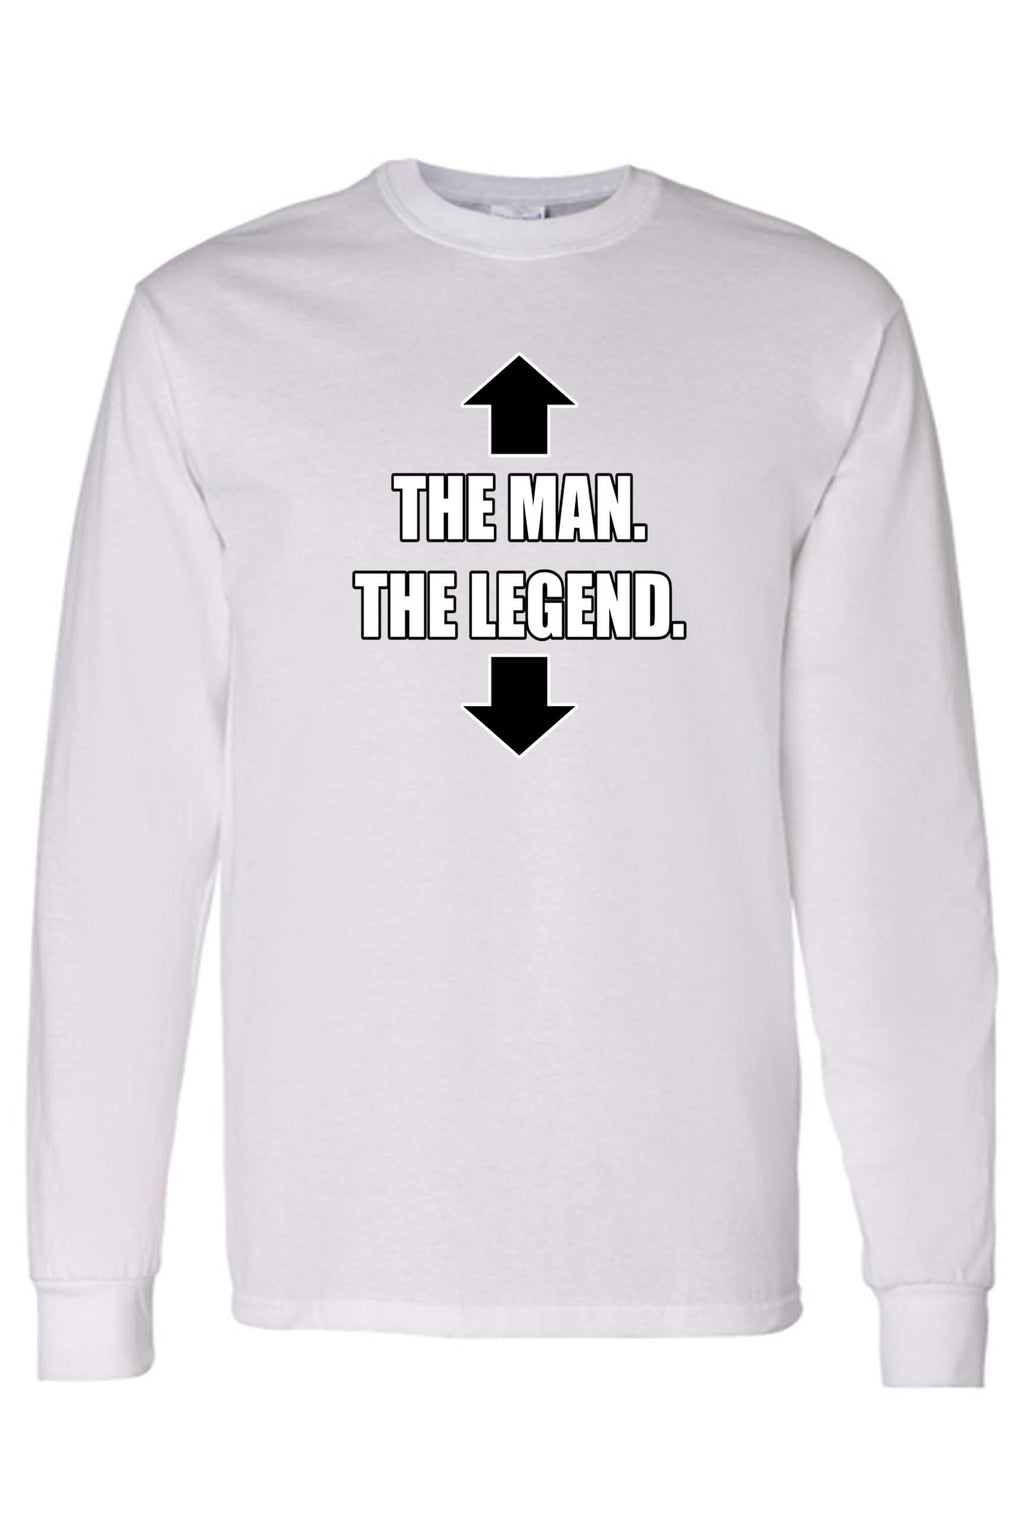 Unisex The Man The Legend Long Sleeve shirt